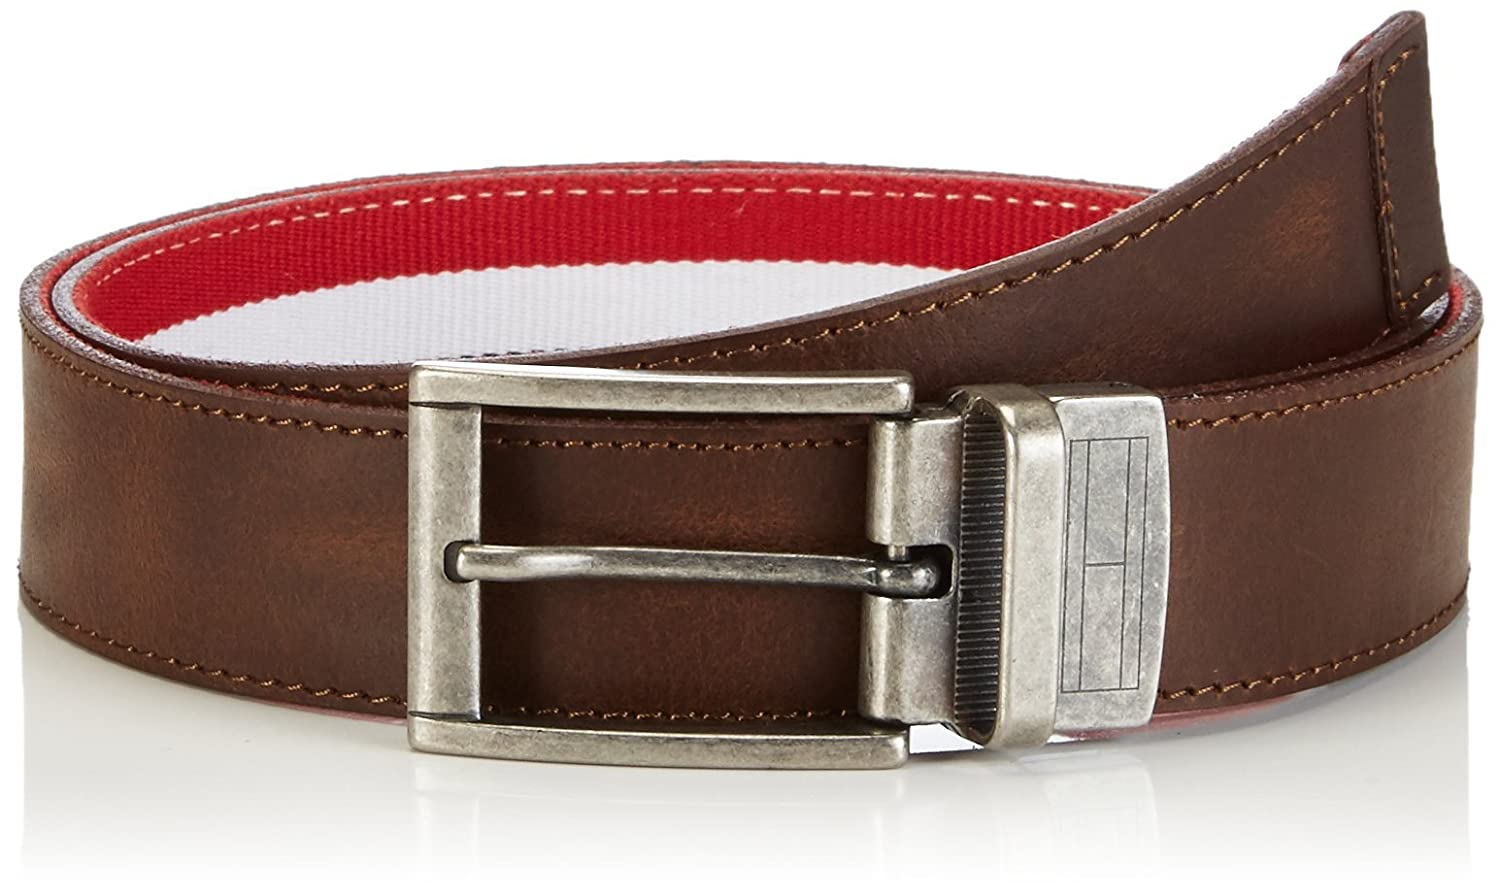 Hilfiger Denim Herren Gürtel THDM REVERSIBLE LE & CO BELT 2